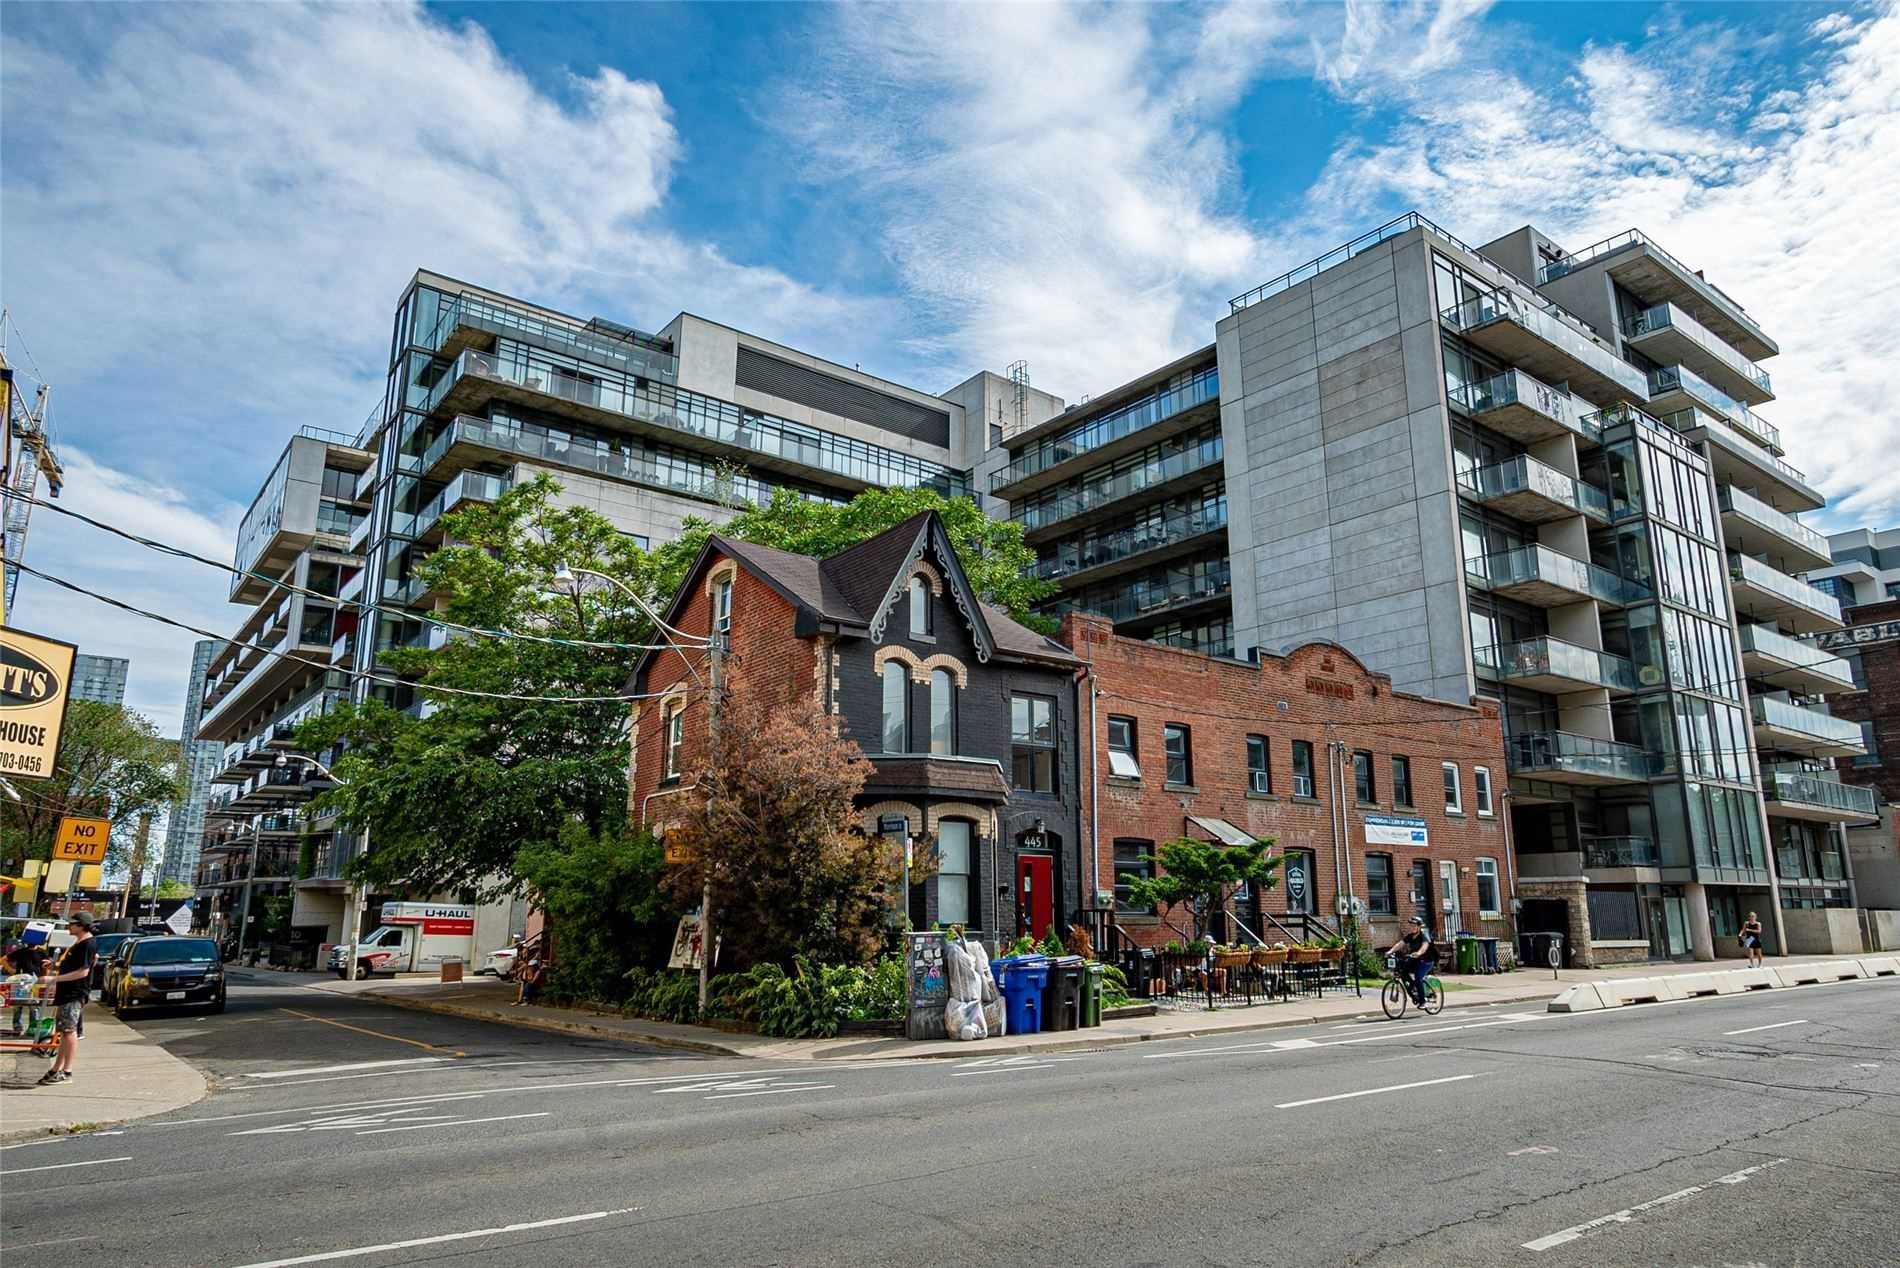 461 Adelaide St W, unit 230 for rent in Toronto - image #2